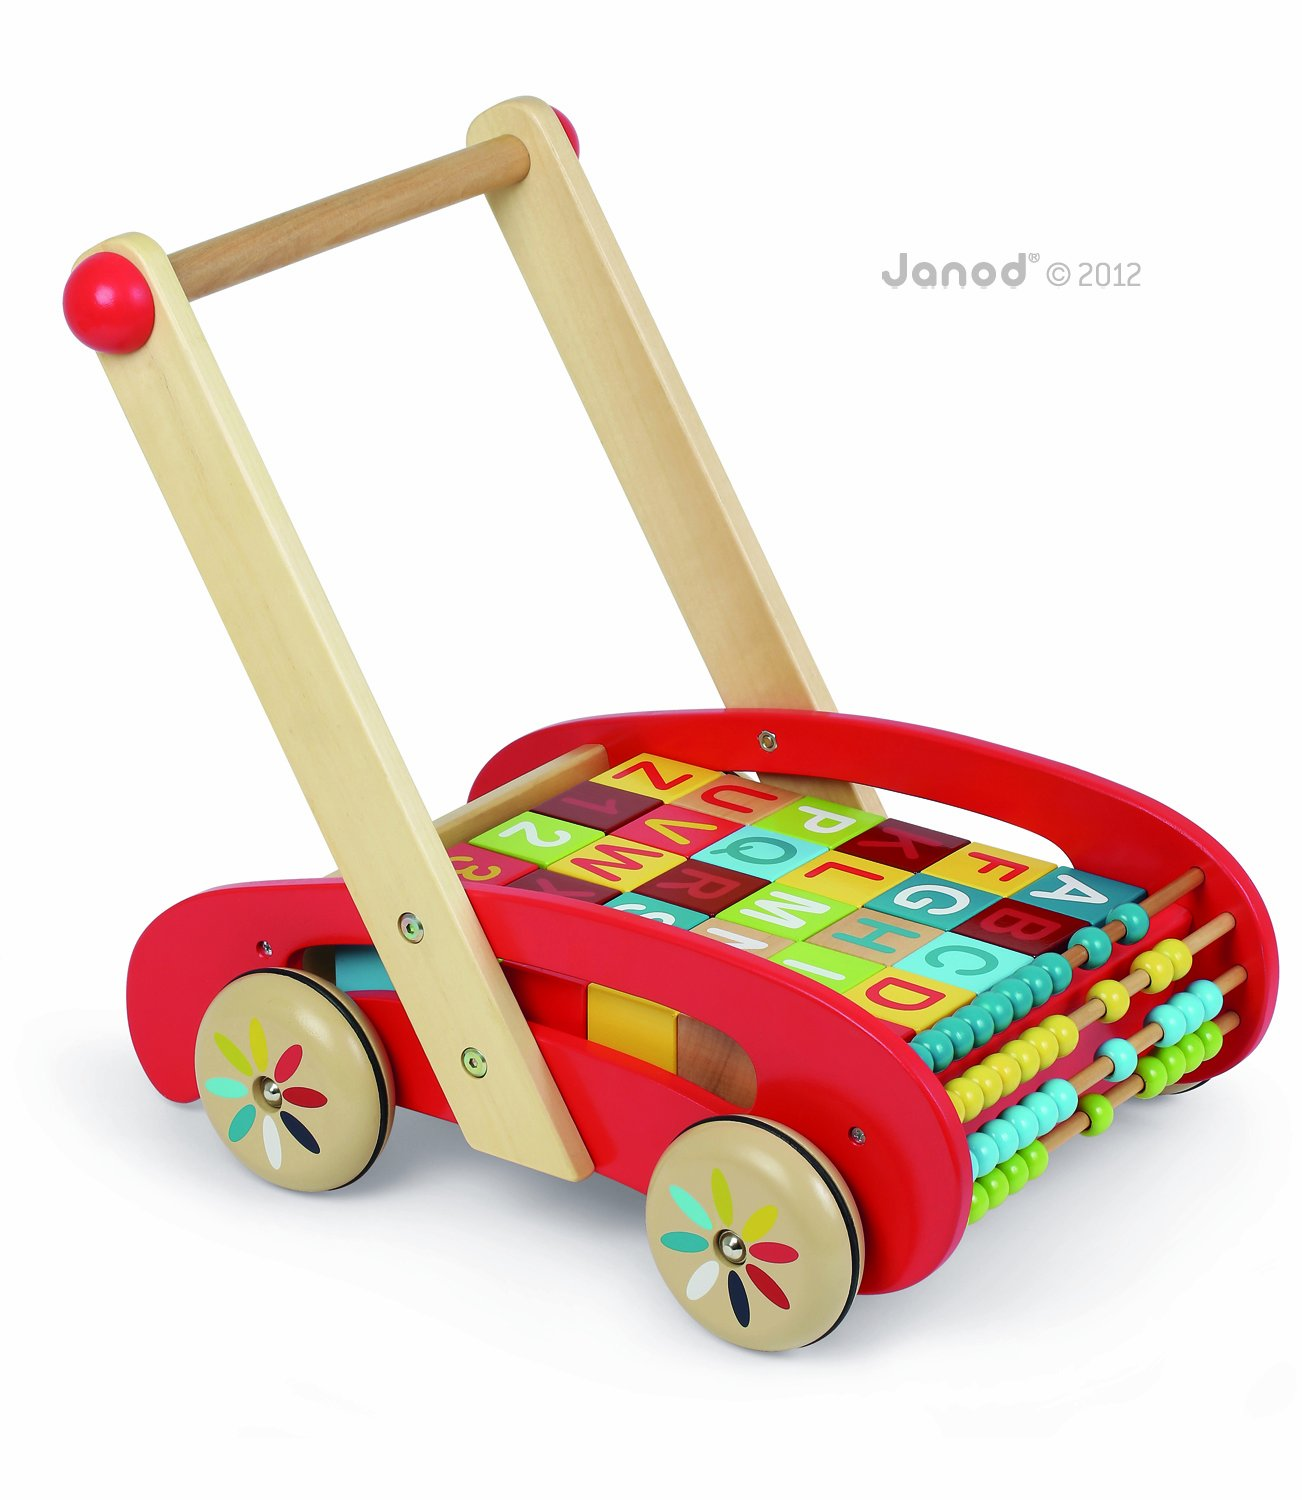 Janod Abc Buggy with wooden alphabet blocks and abacus